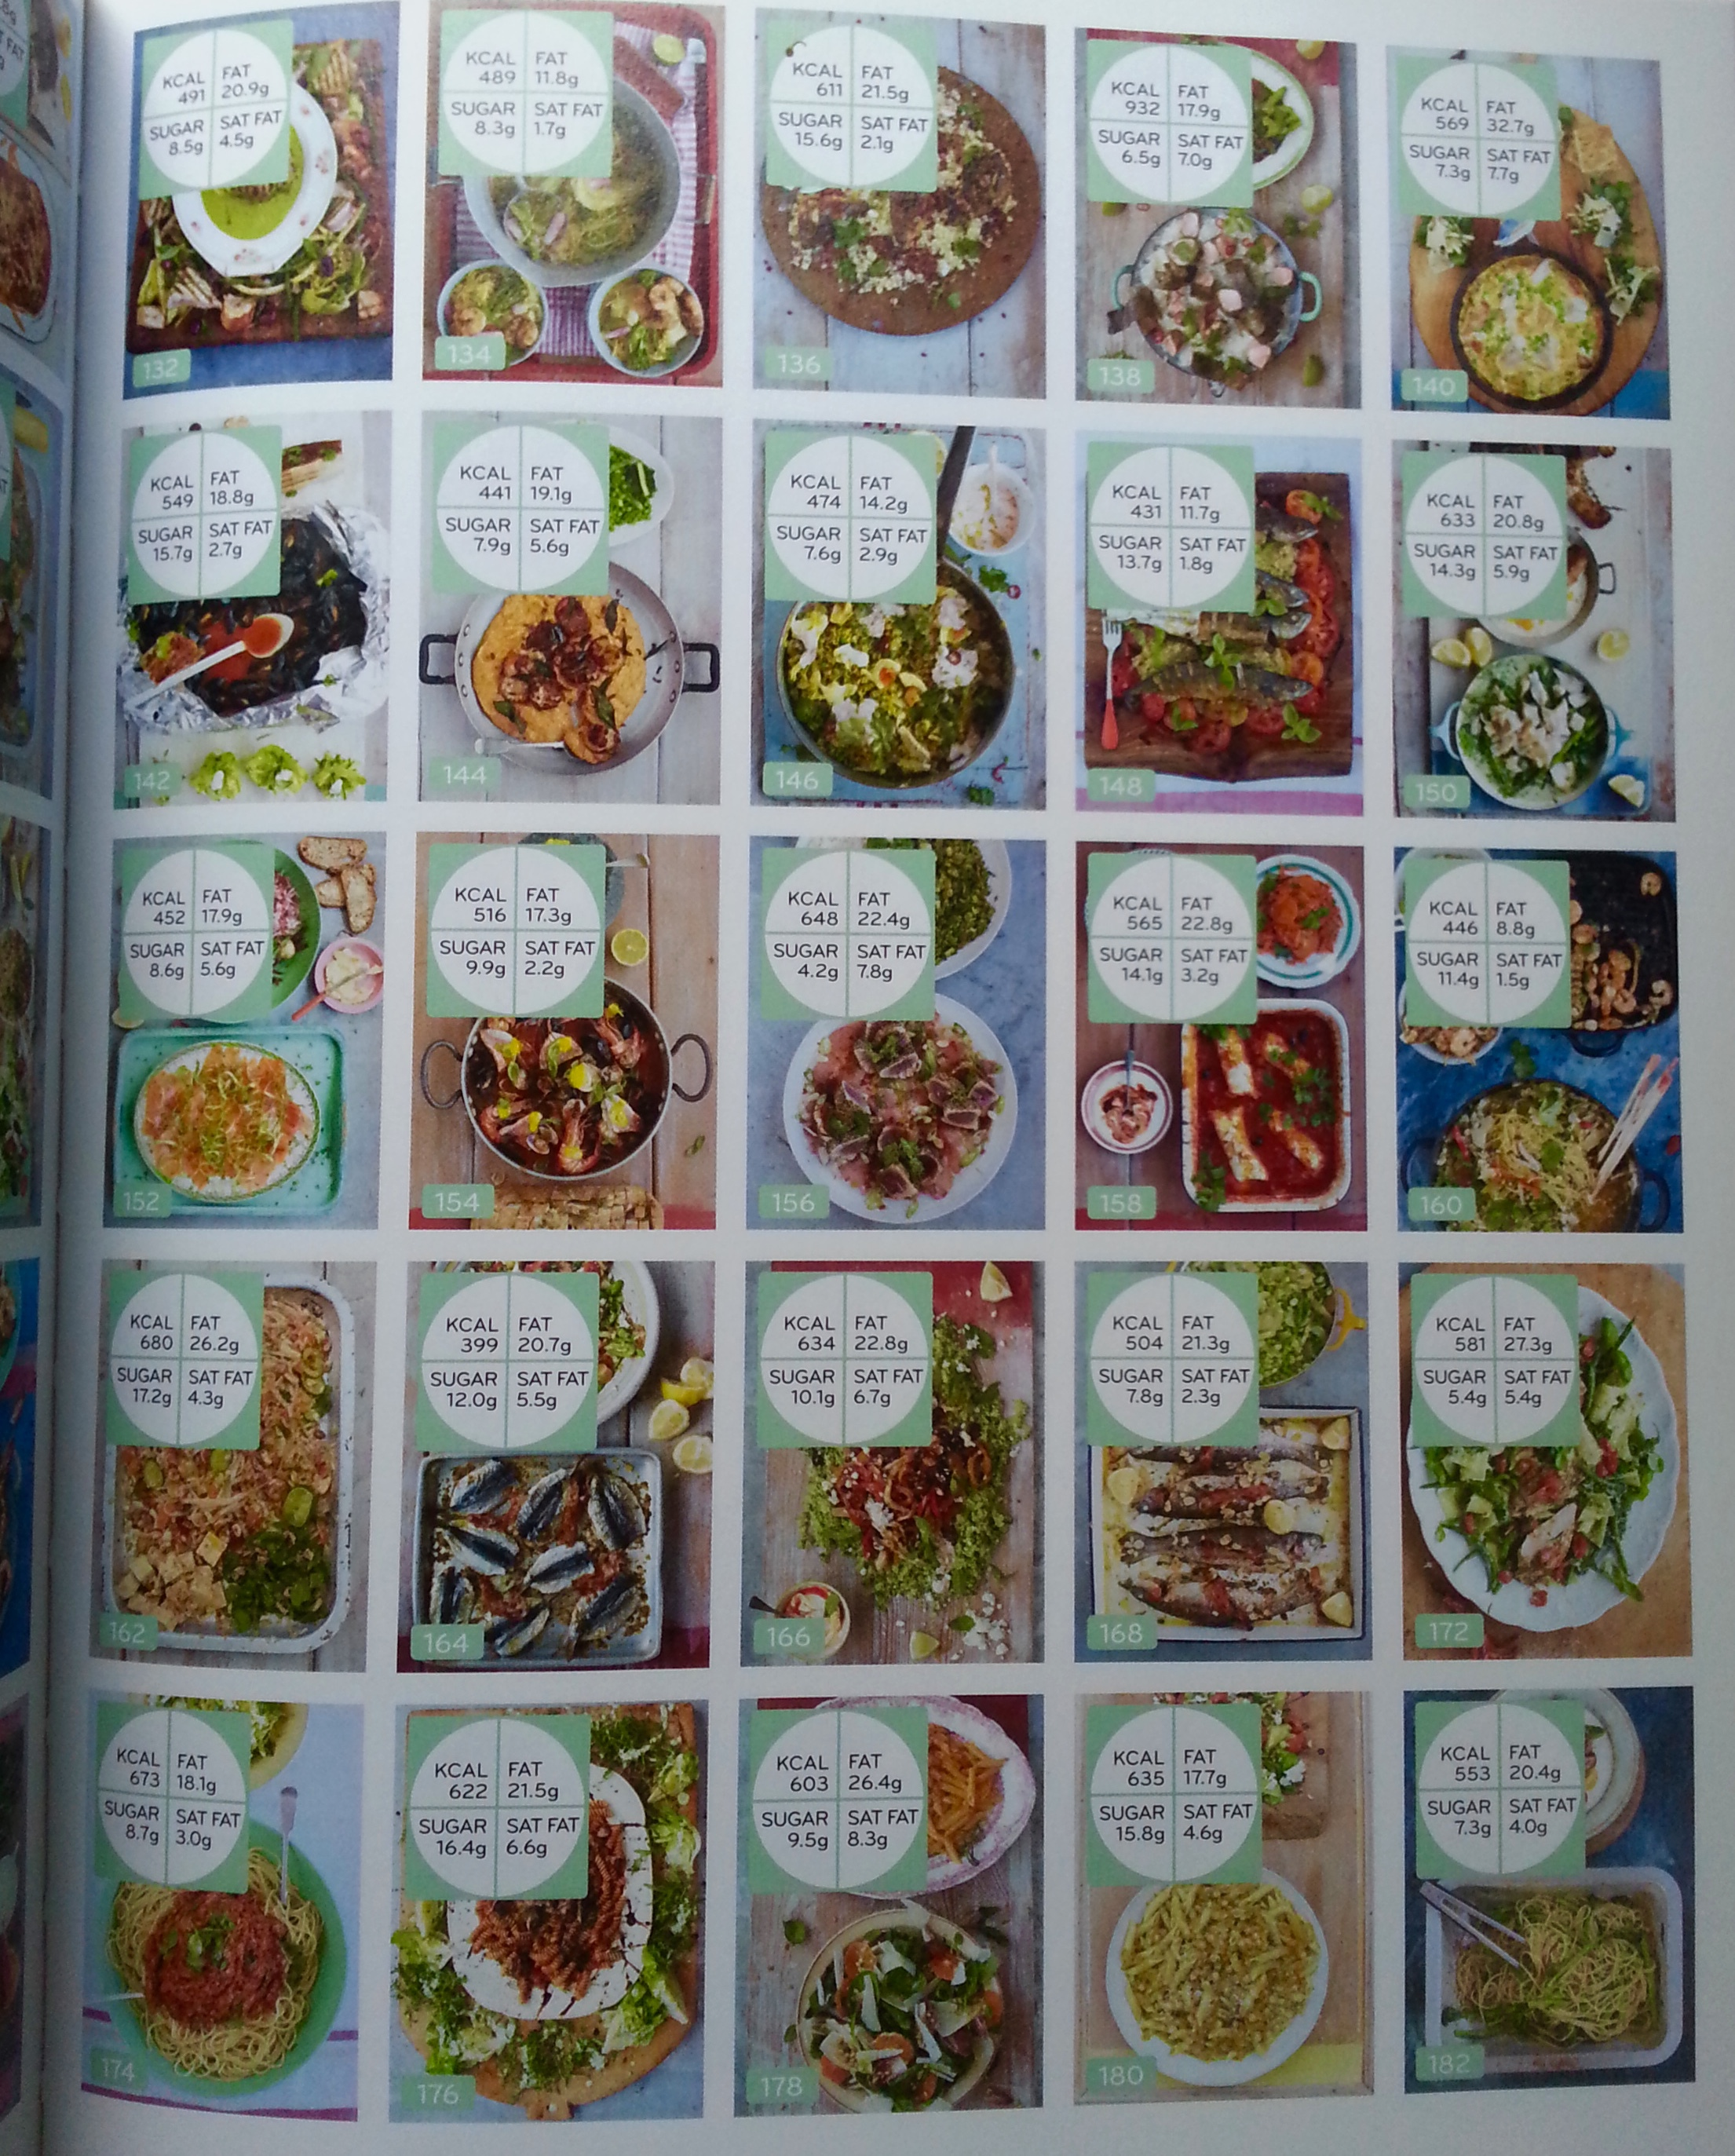 Jamies 15 minute meals book review everywhere jamies 15 minute meals jamie oliver recipe book forumfinder Image collections